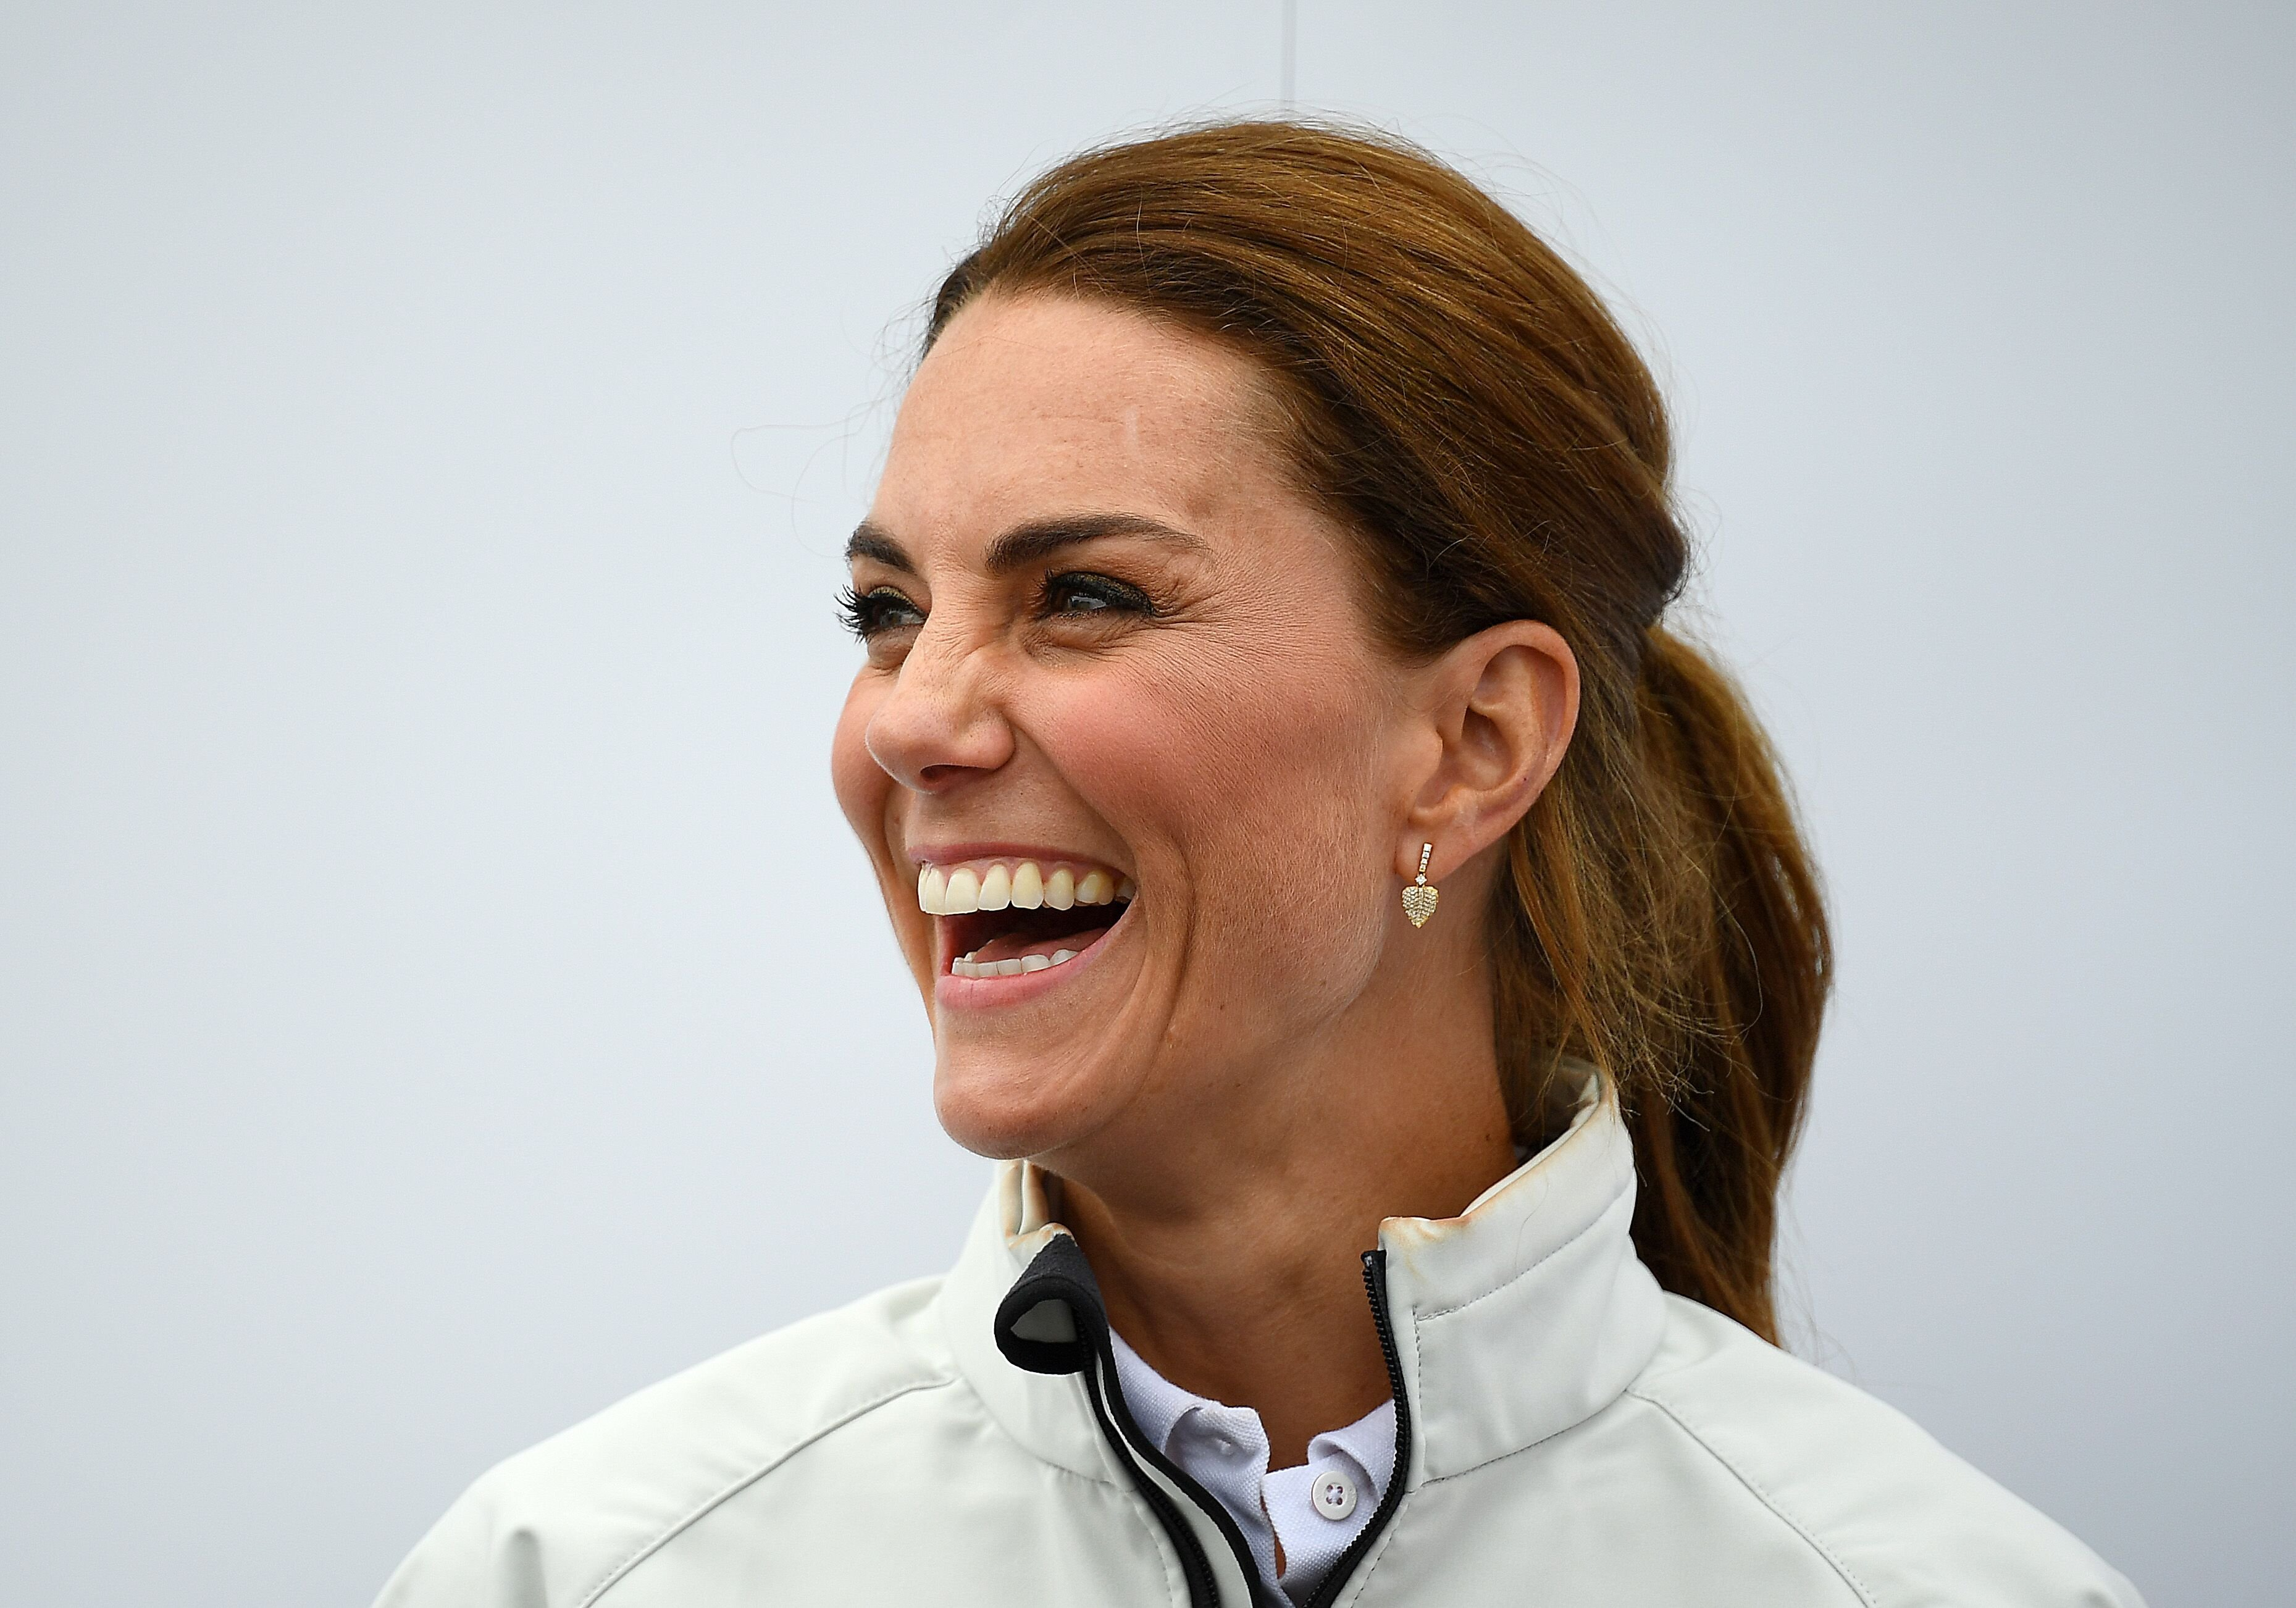 Kate Middleton at the King's Cup charity race. | Source: Getty Images